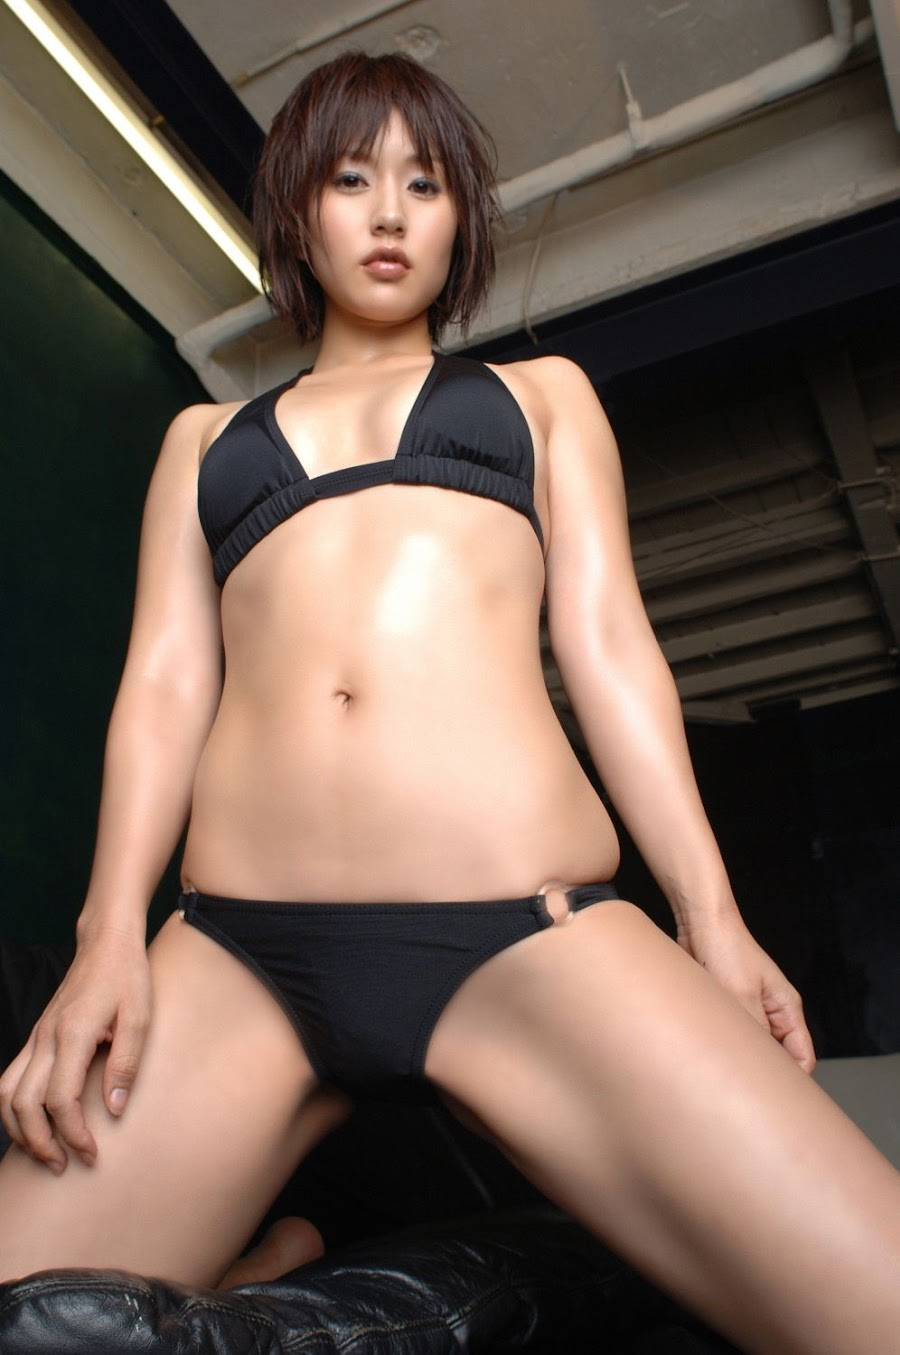 Misato Hirata - sexy Japanese gravure idol and actress